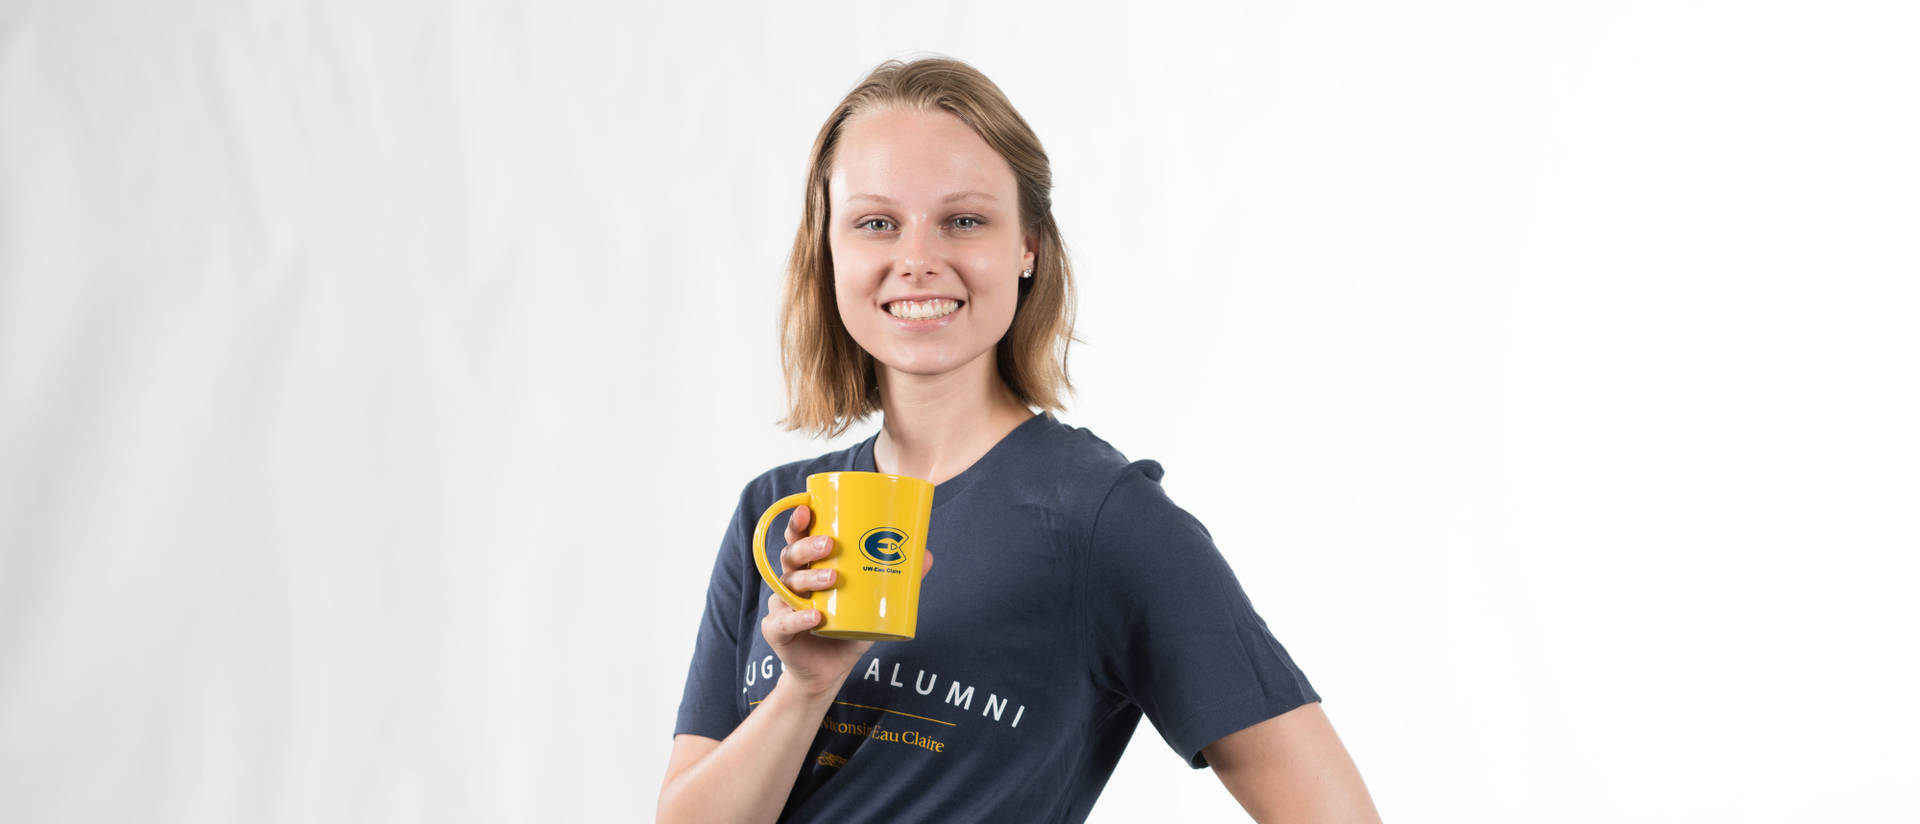 Alumni shows off blugold apparel and mug